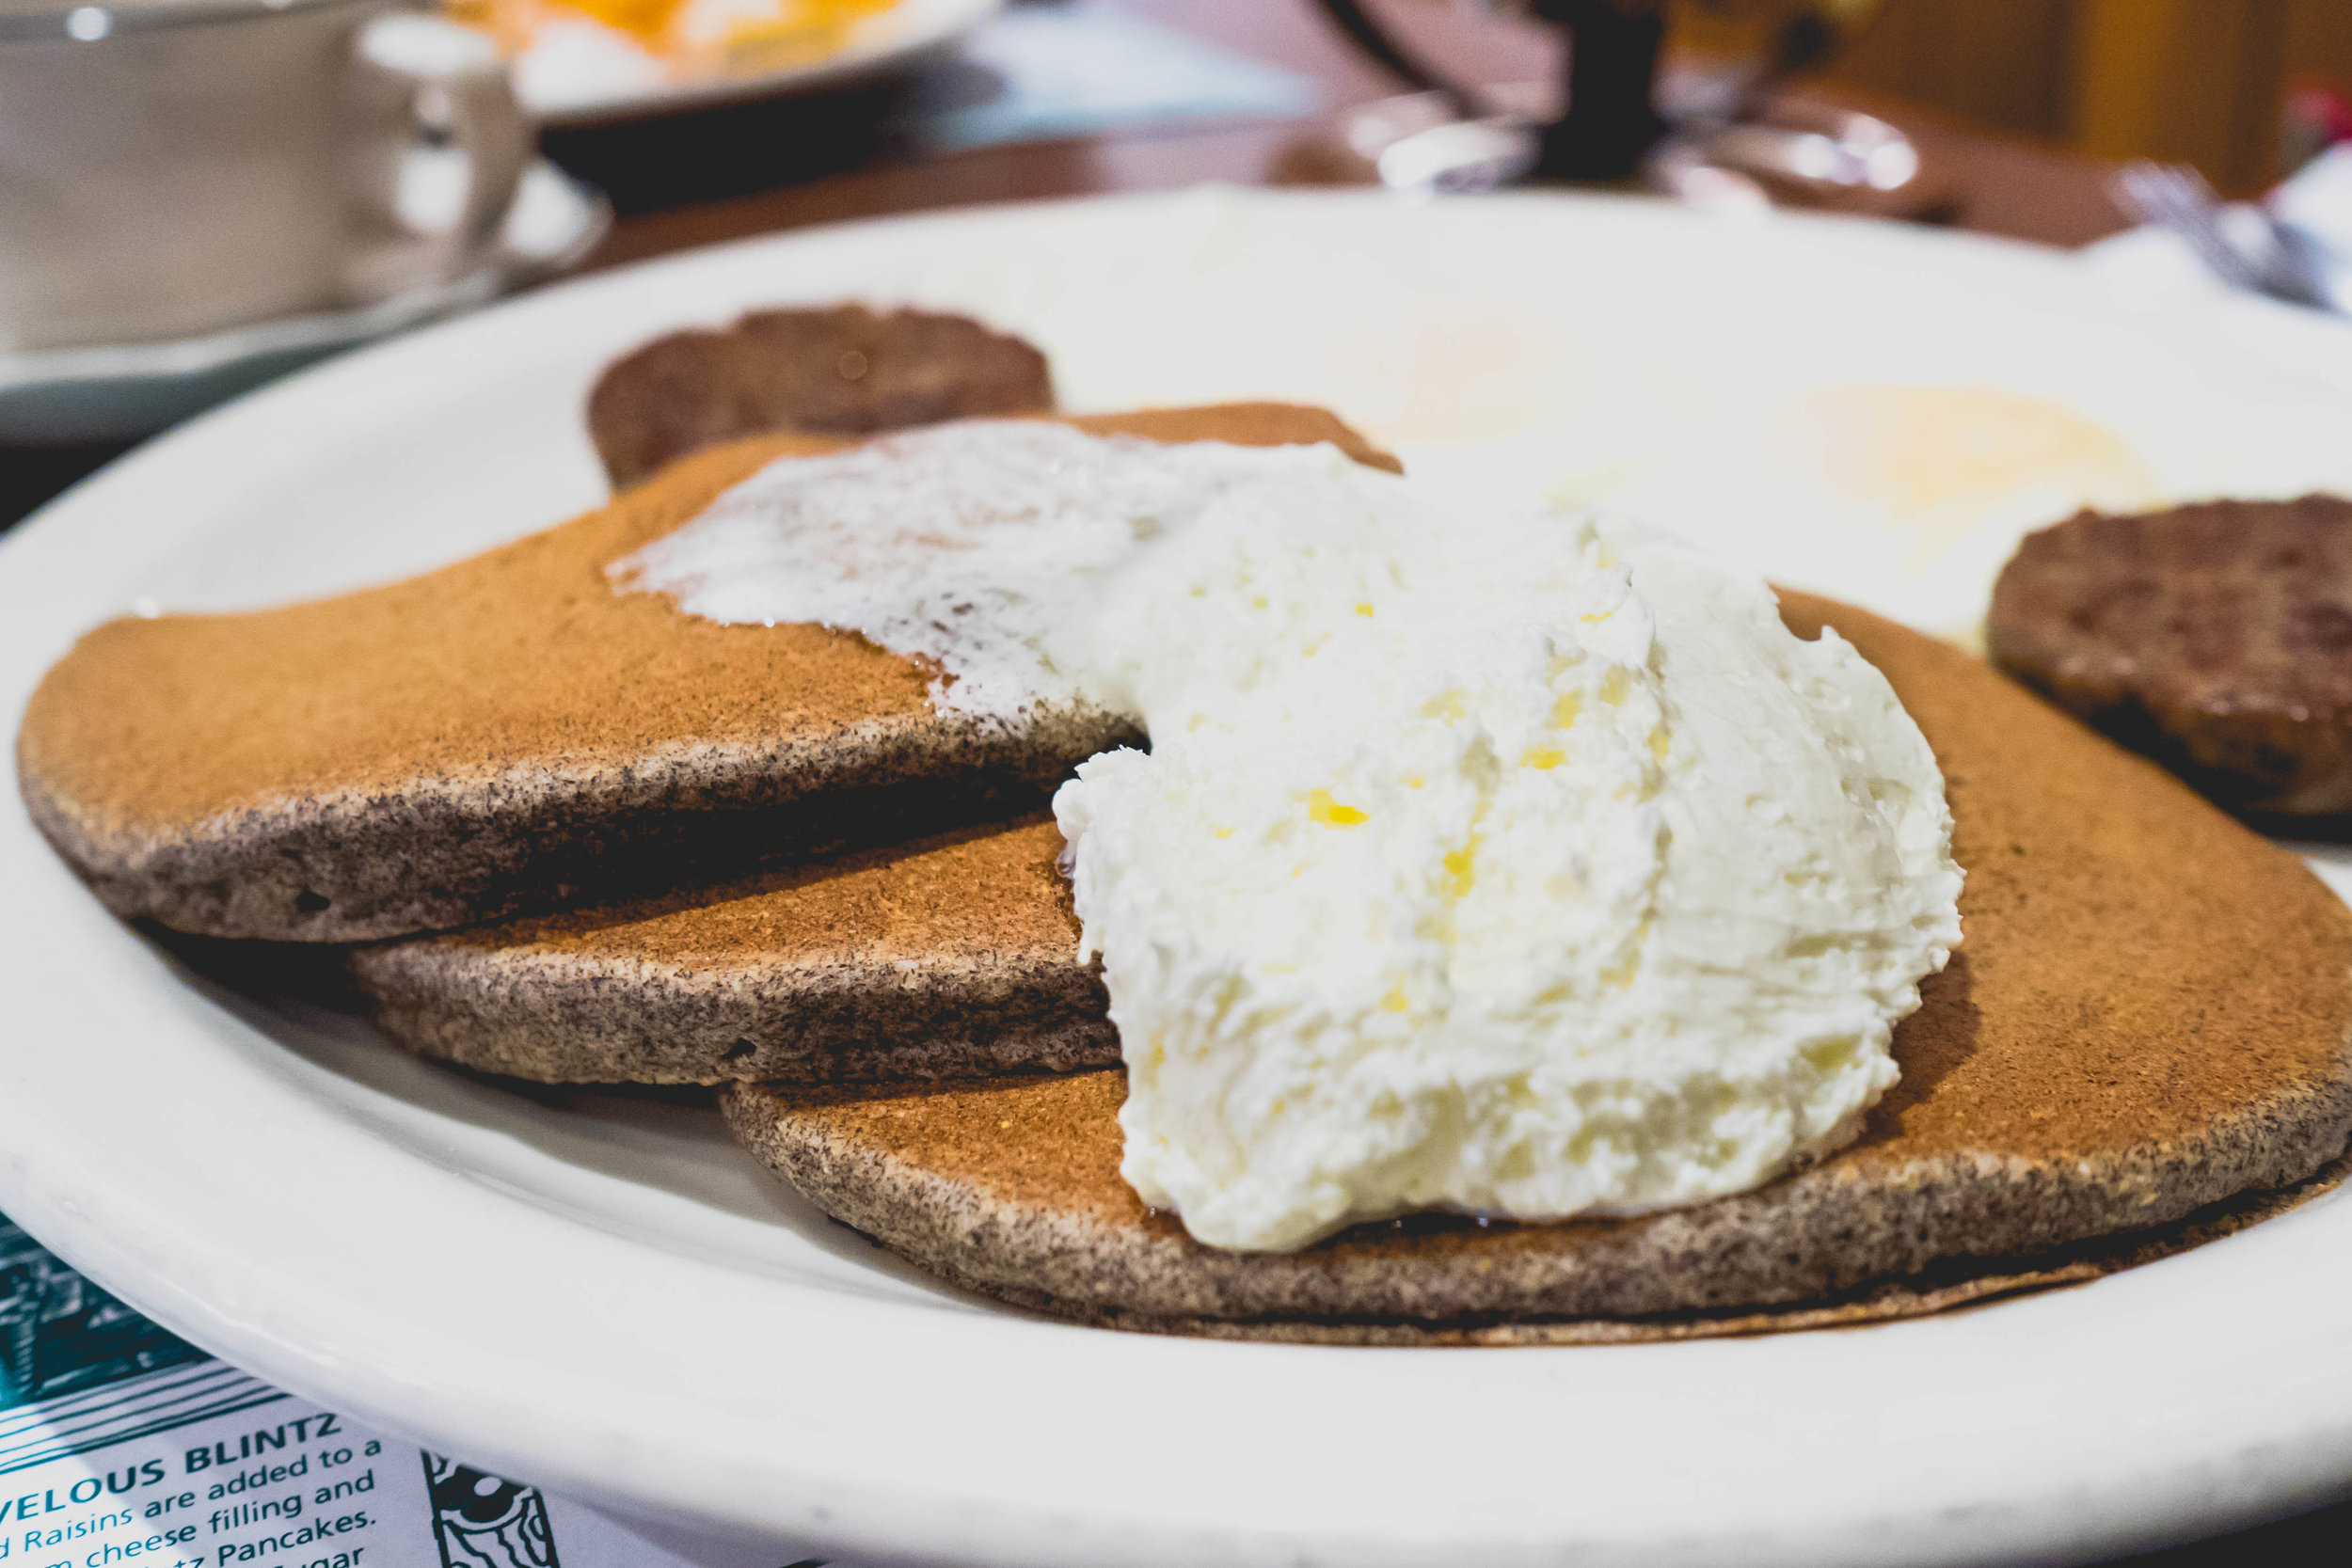 smoky mountain buckwheat cakes  with whipped butter.